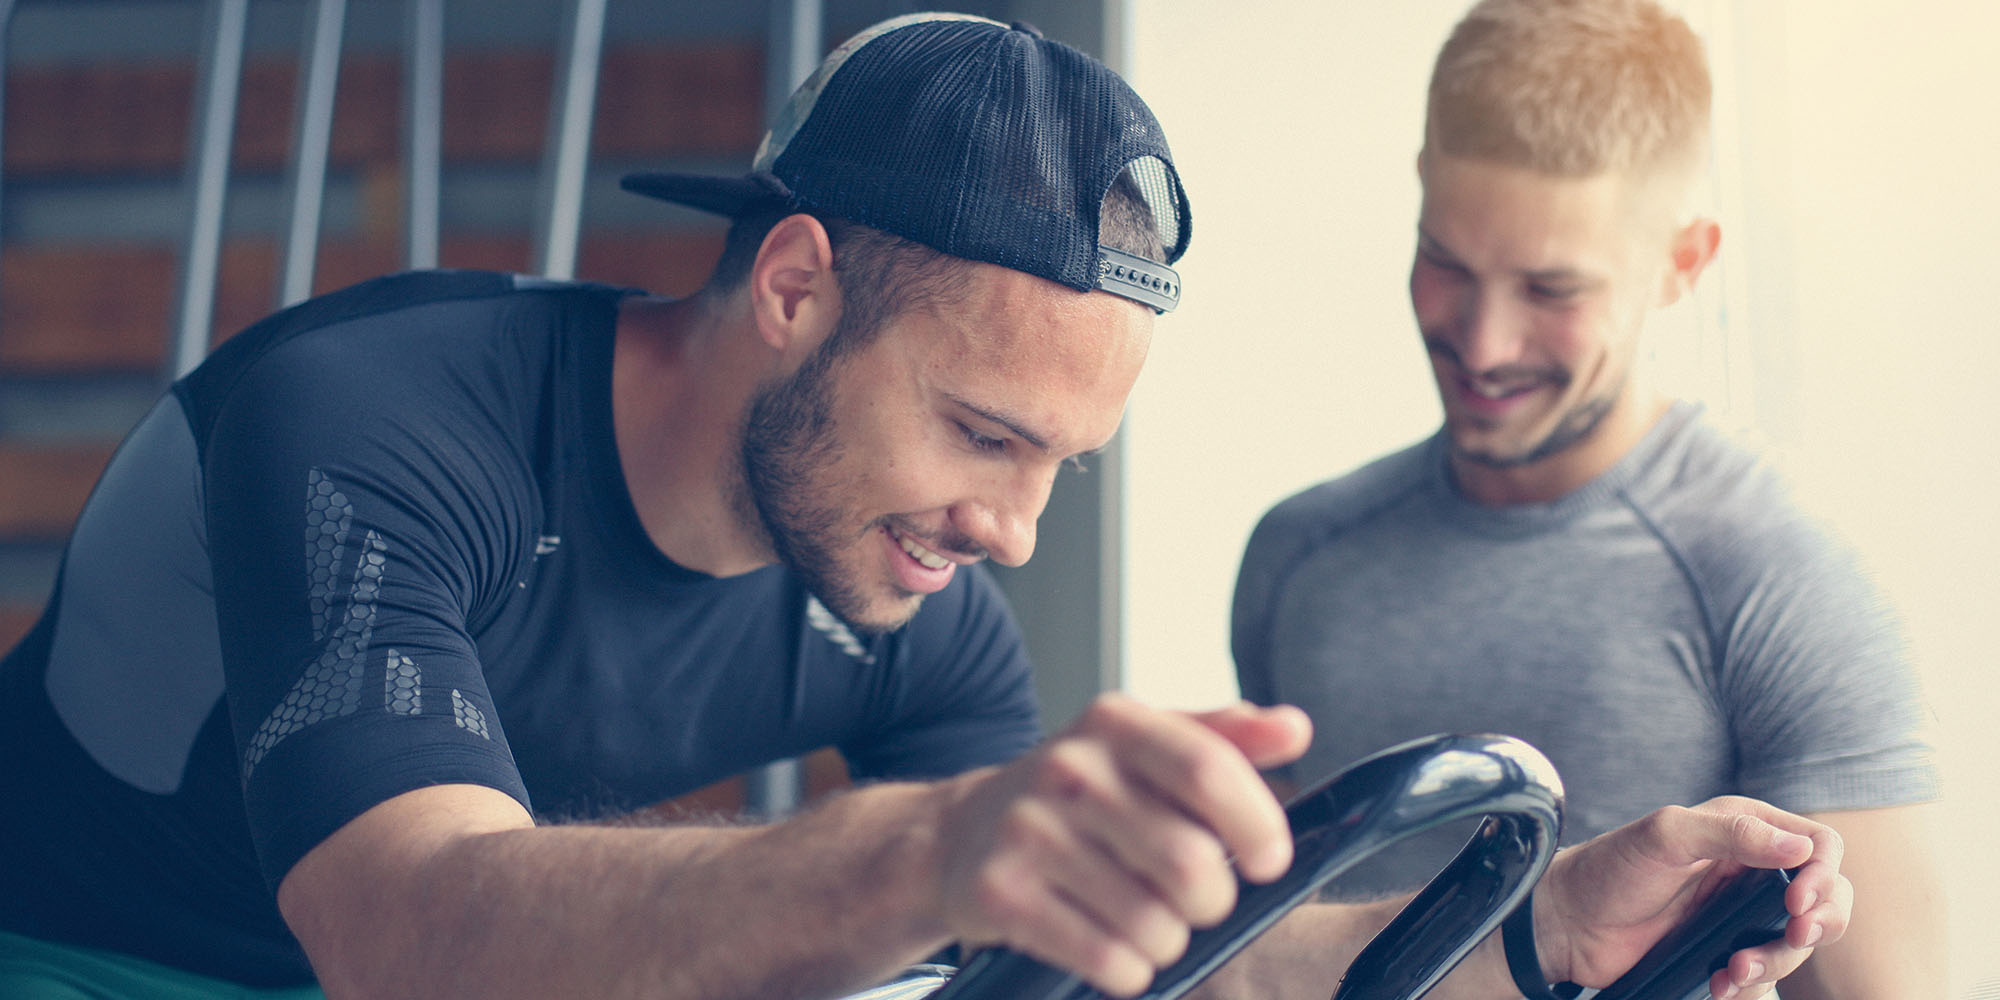 Our Personal Trainer Suggests 5 Ways to Fall in Love With the Gym Again